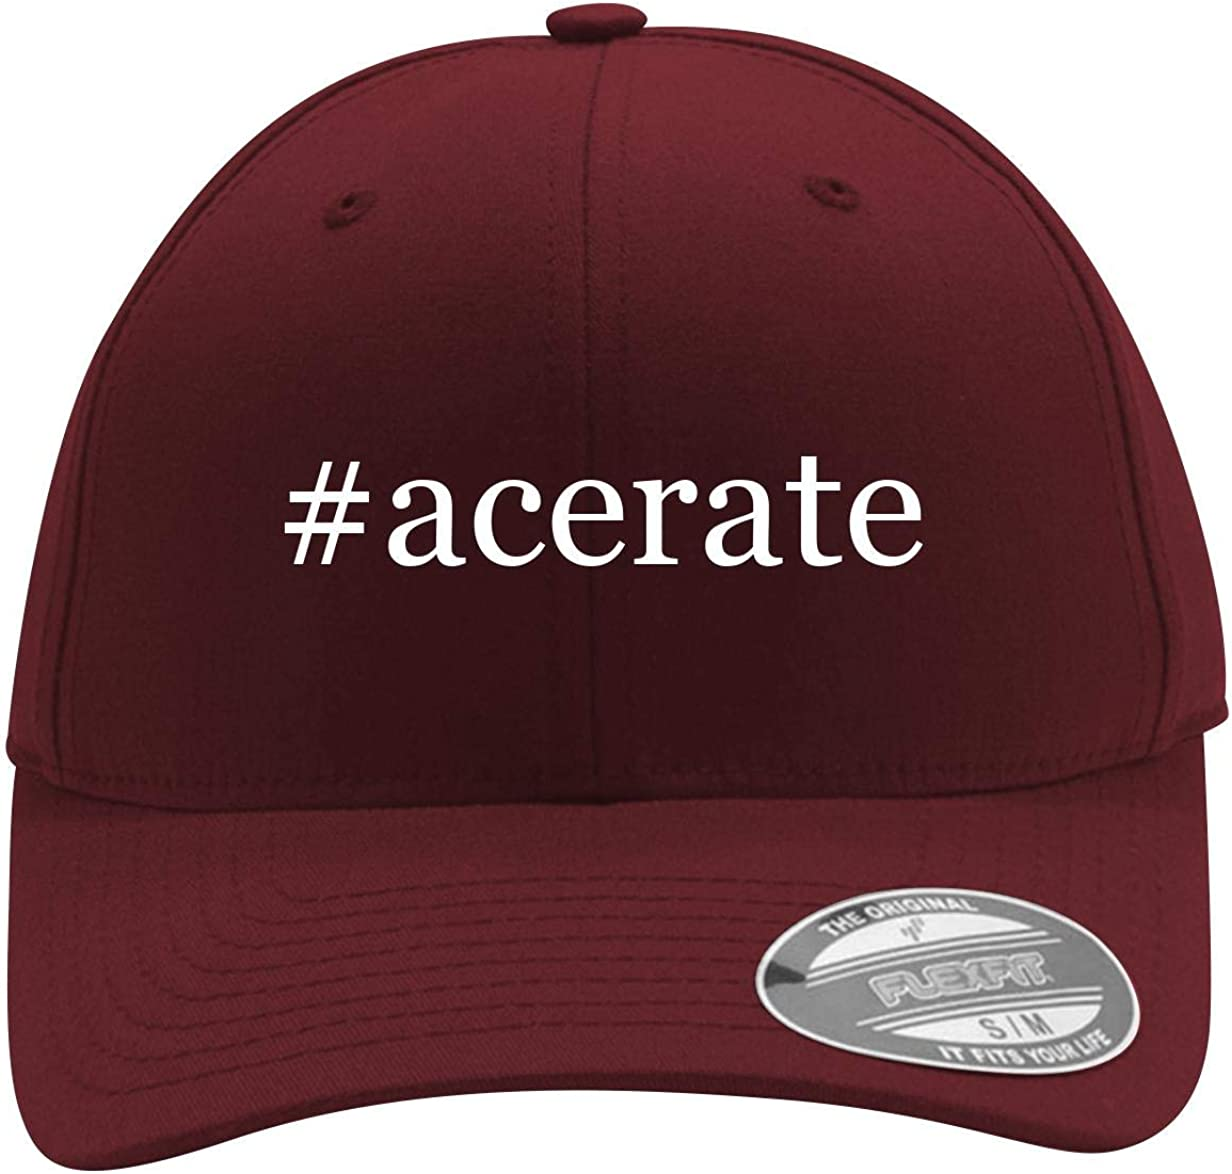 #Acerate - Men's Hashtag Flexfit Baseball Cap Hat 6106IhSYAzL